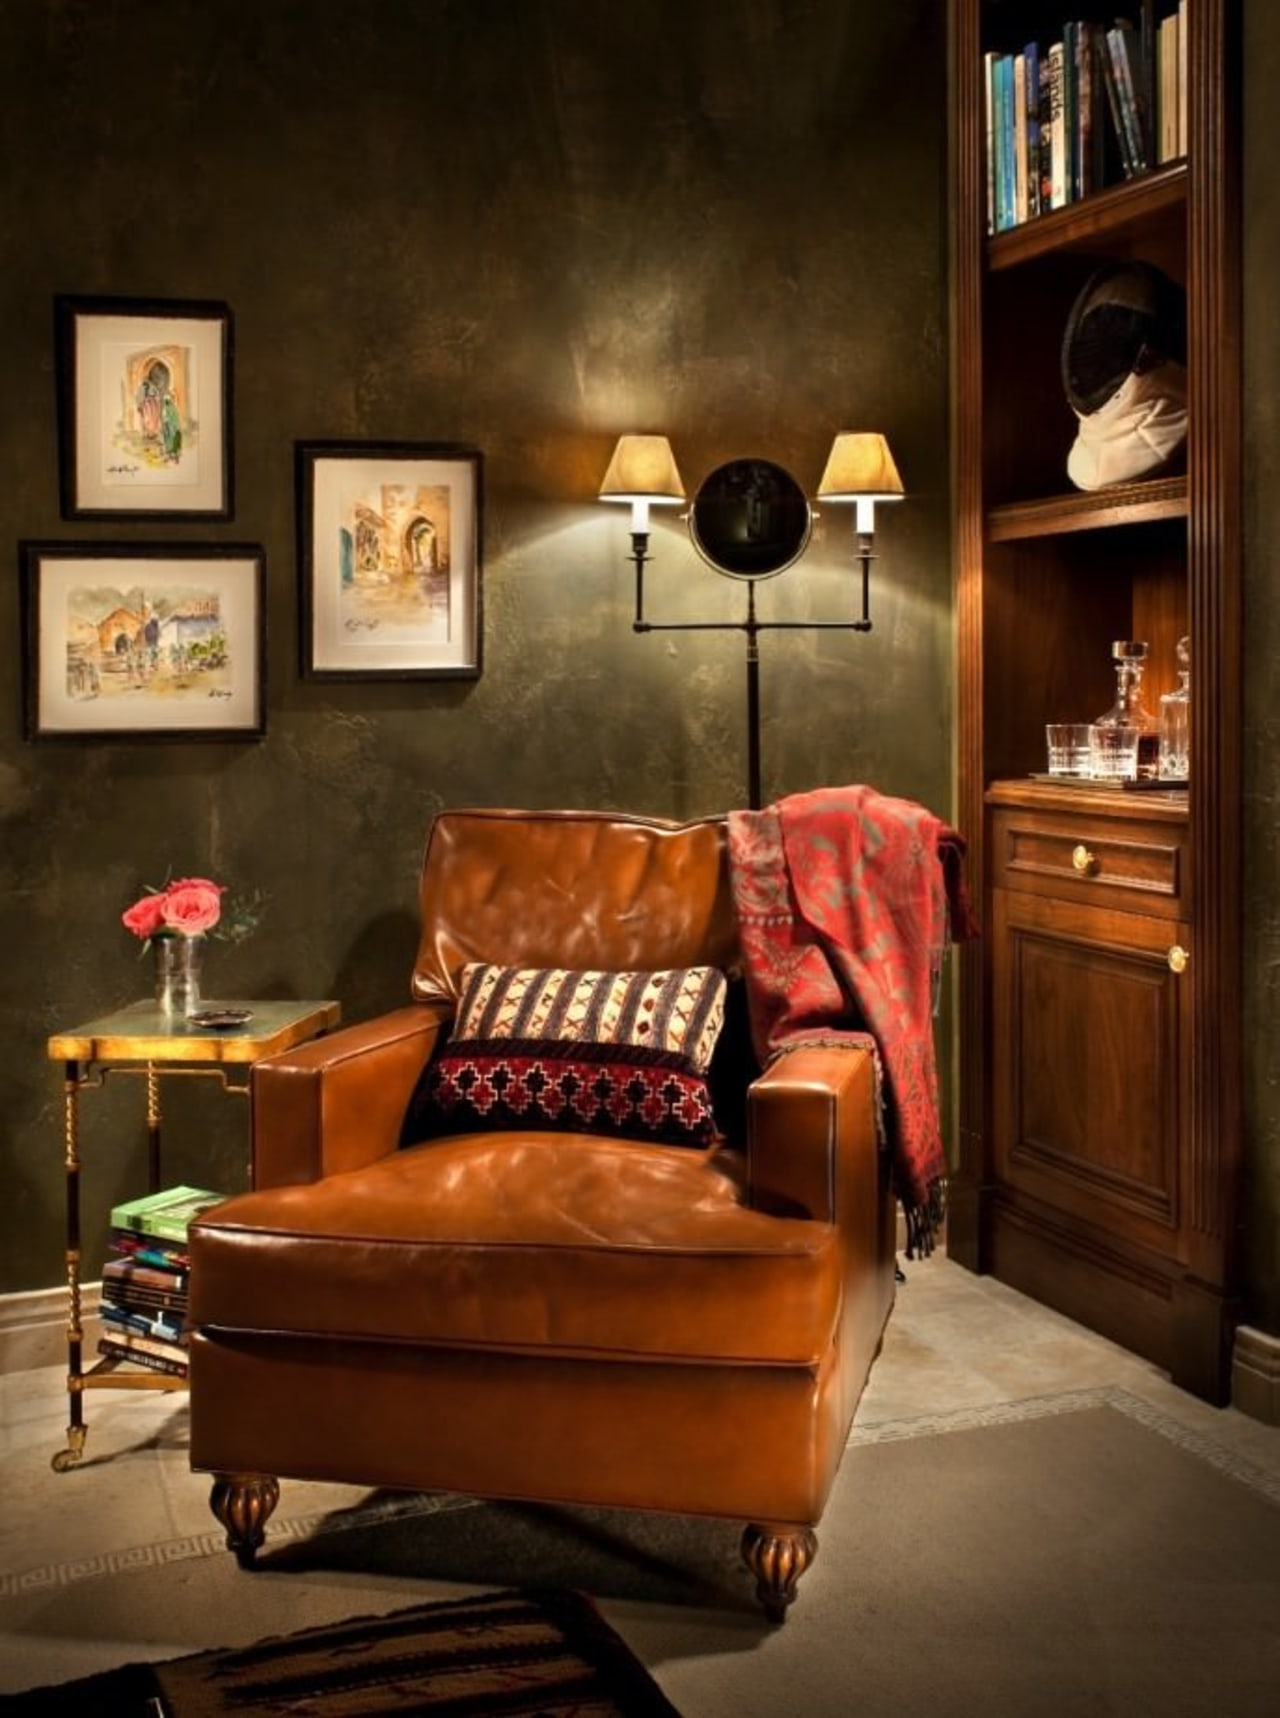 This certainly fits the image of the traditional chair, couch, furniture, hardwood, home, interior design, living room, room, table, wall, brown